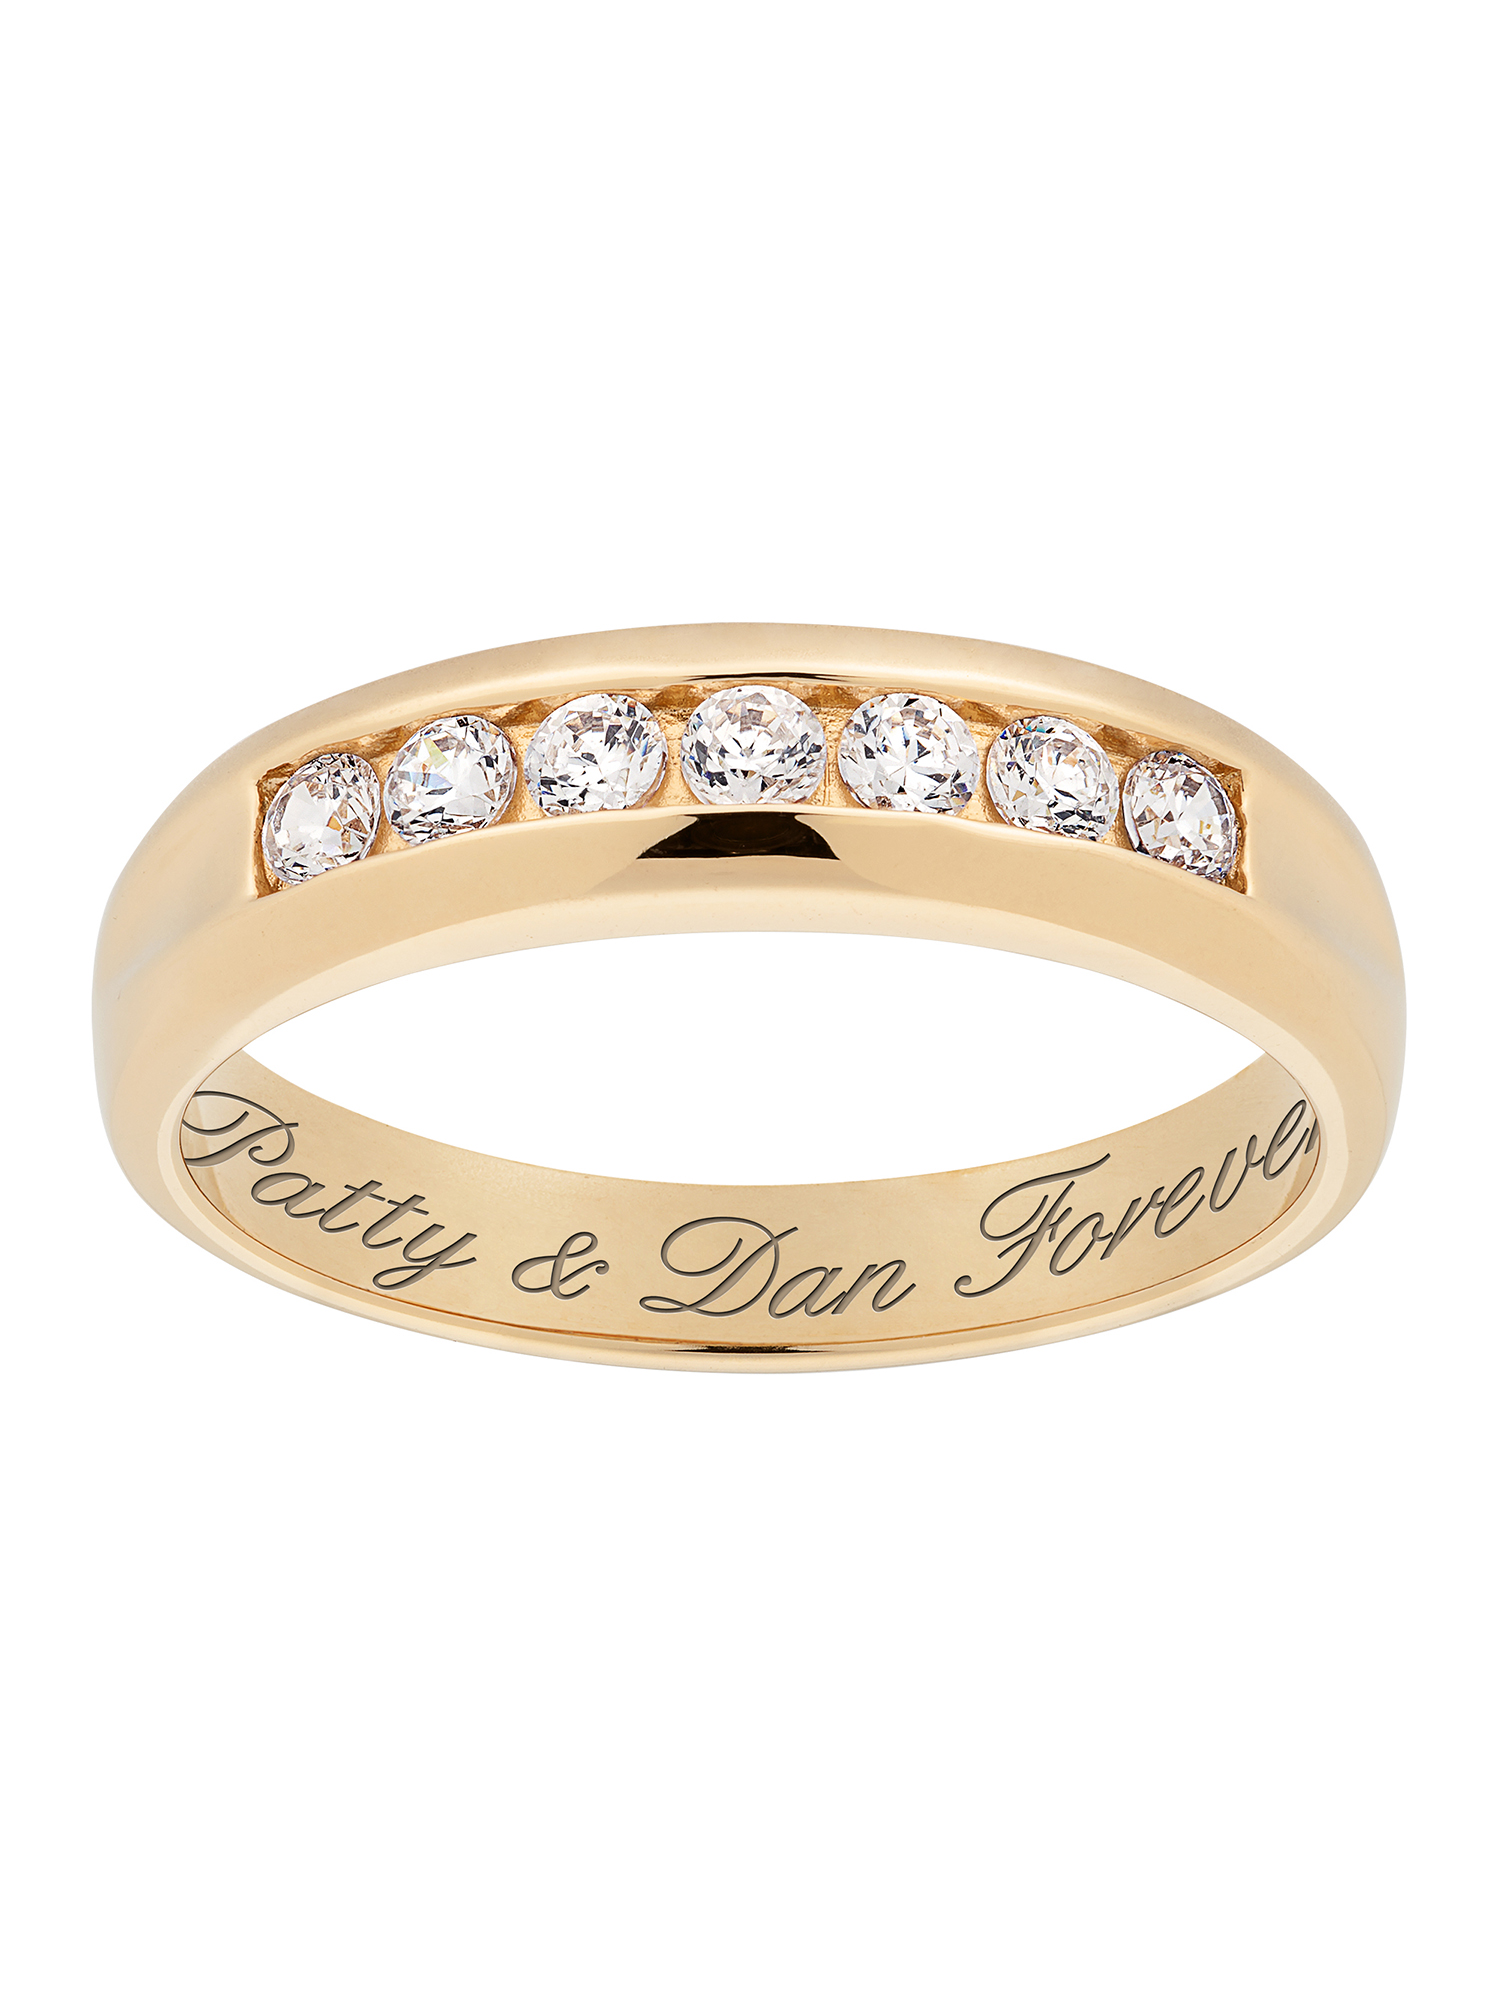 Personalized Men's Engraved CZ Wedding Band in 18kt Gold-Plated Sterling Silver